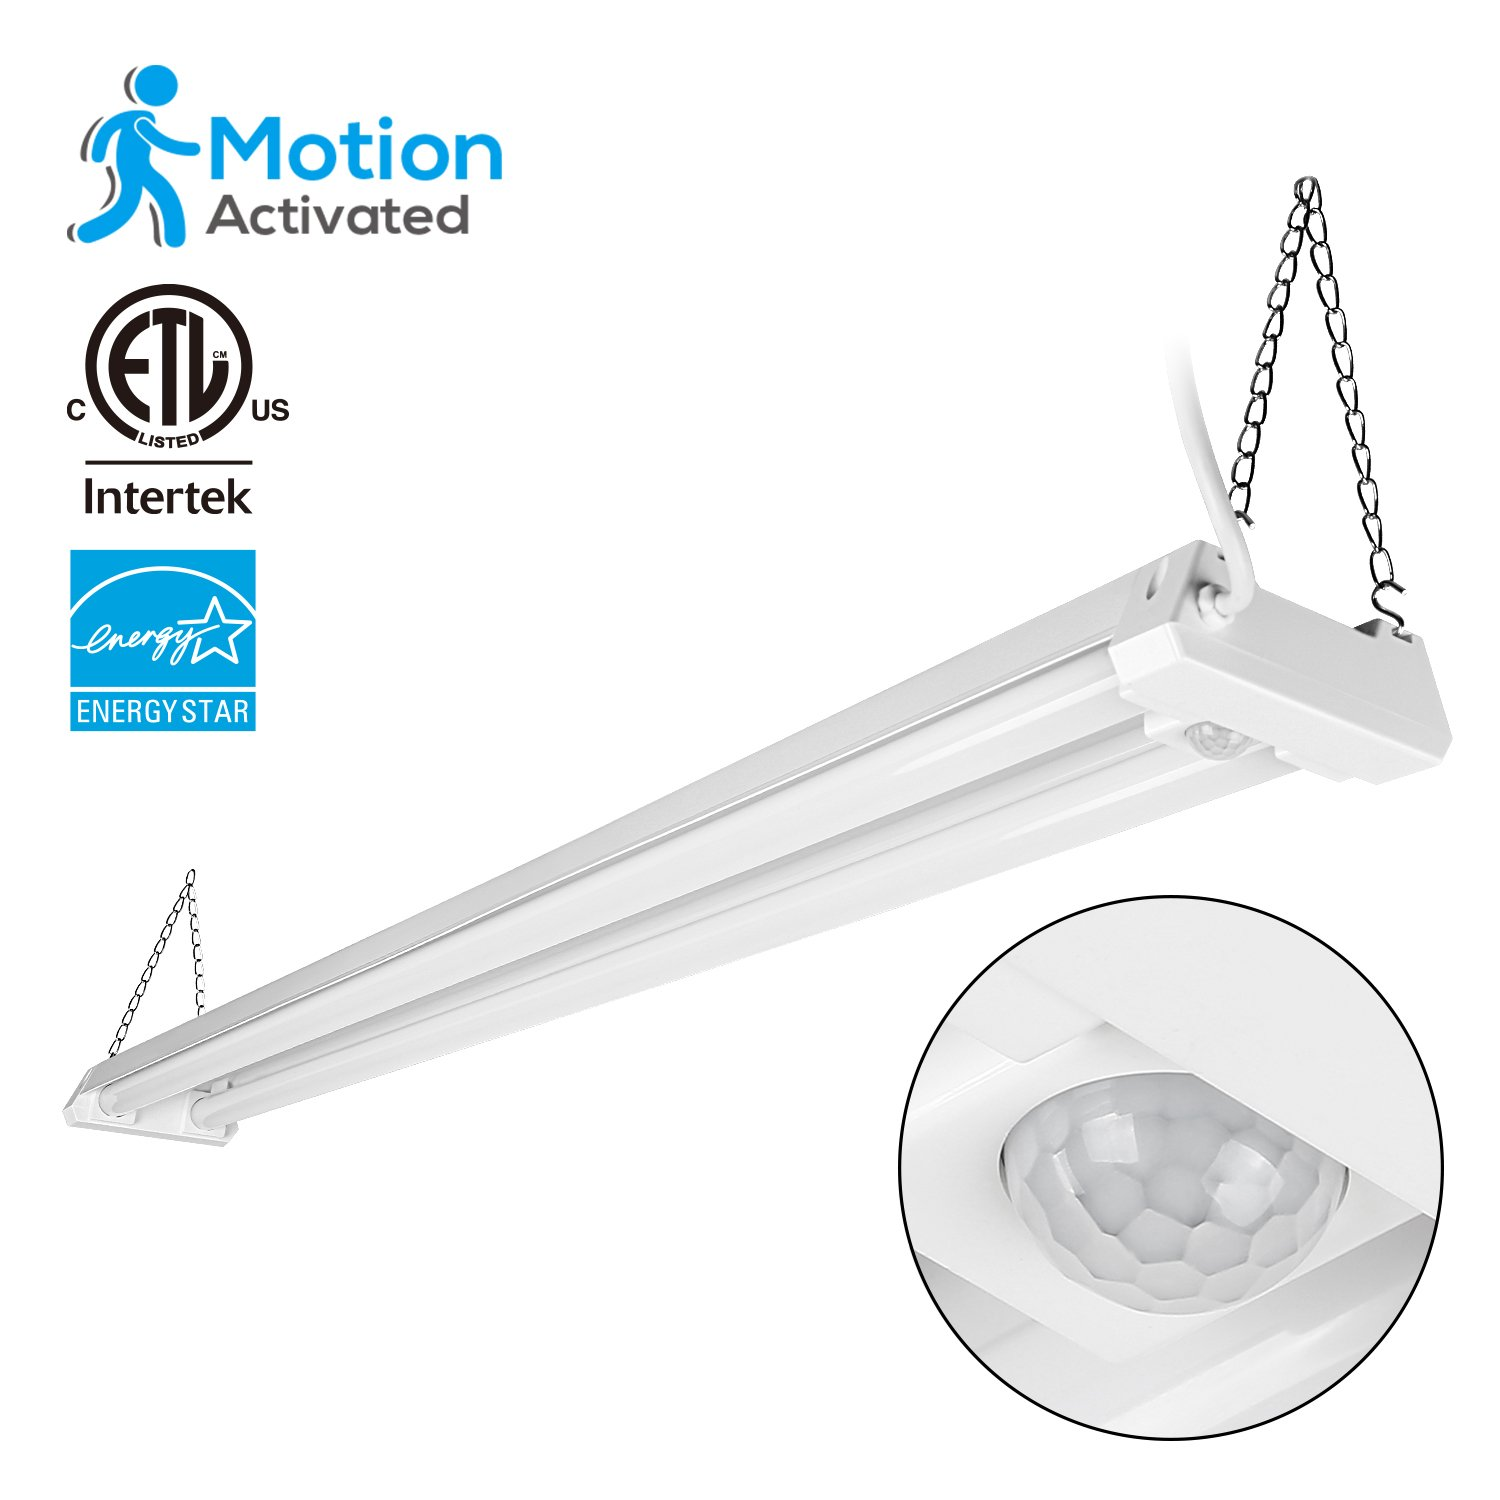 4ft Linkable LED Motion Activated Utility Shop Light, 40W (120W T8 Tubes Equiv.) LED Ceiling Fixture, 4100lm, Energy Star & ETL Listed,5000K Daylight, for Garage/Basement/Workshop